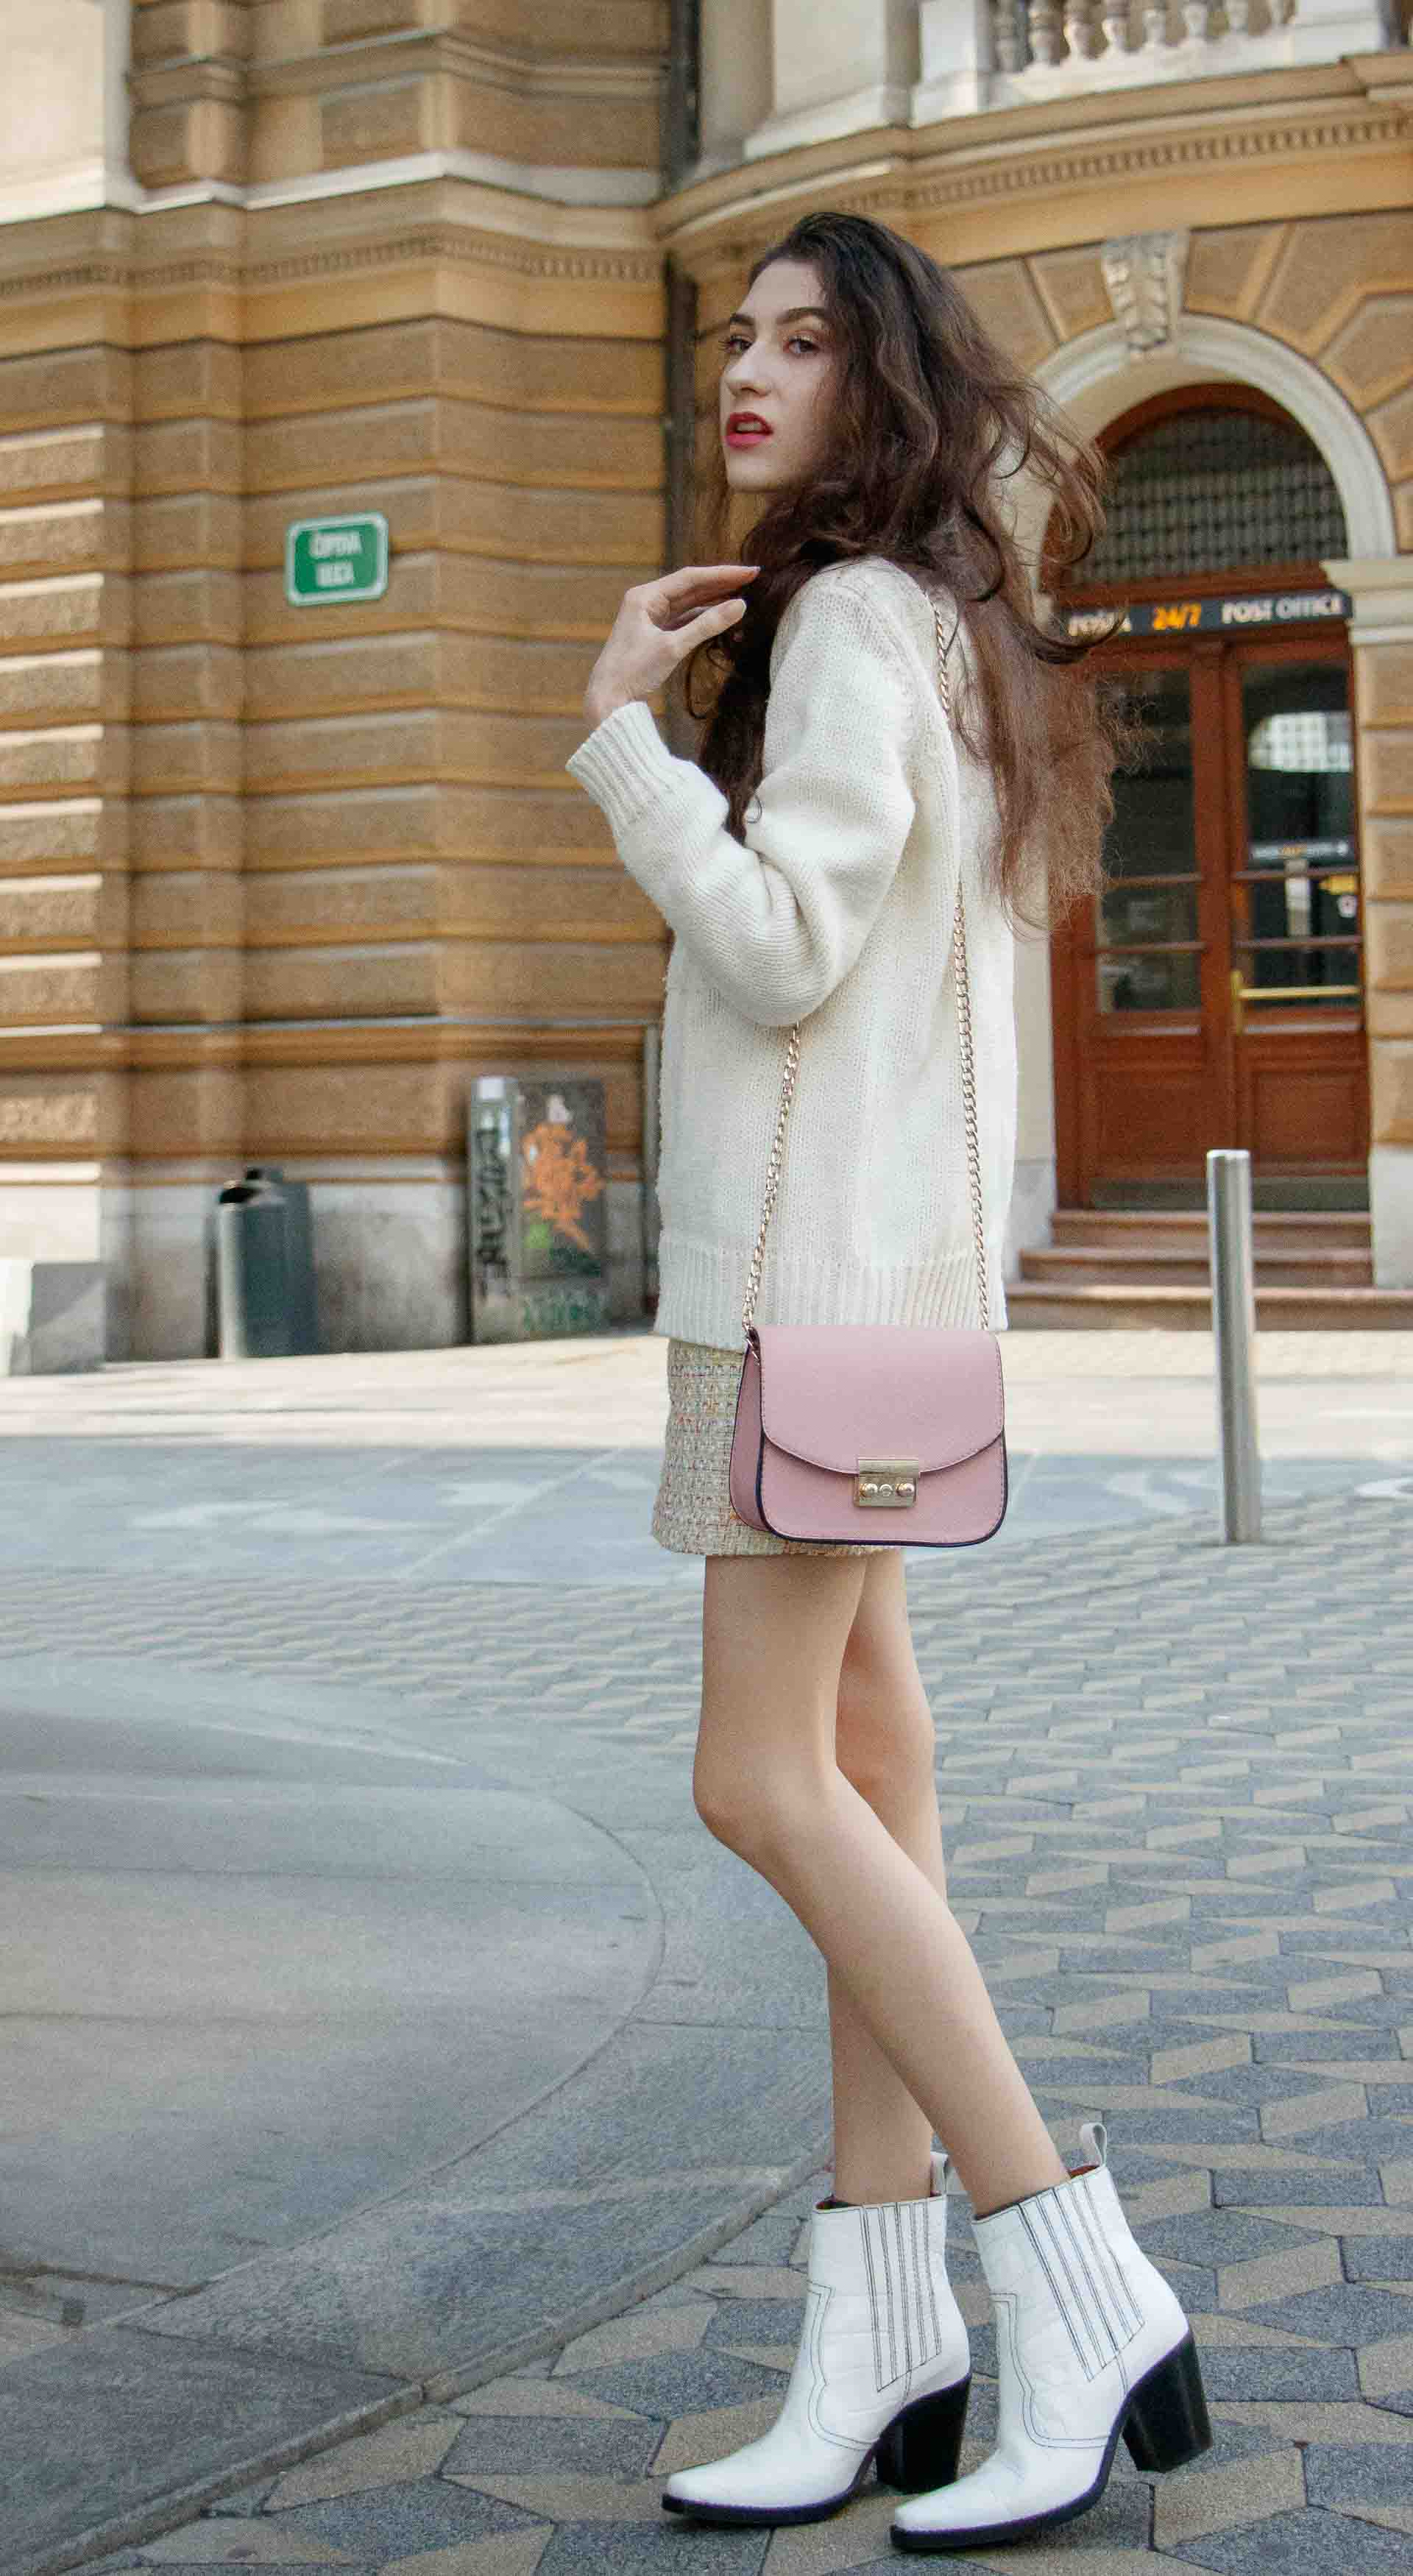 Beautiful Slovenian Fashion Blogger Veronika Lipar of Brunette from Wall dressed in white Ganni Western boots, yellow tweed skirt, white turtleneck sweater, chain strap shoulder bag on the street in the morning in Ljubljana in fall